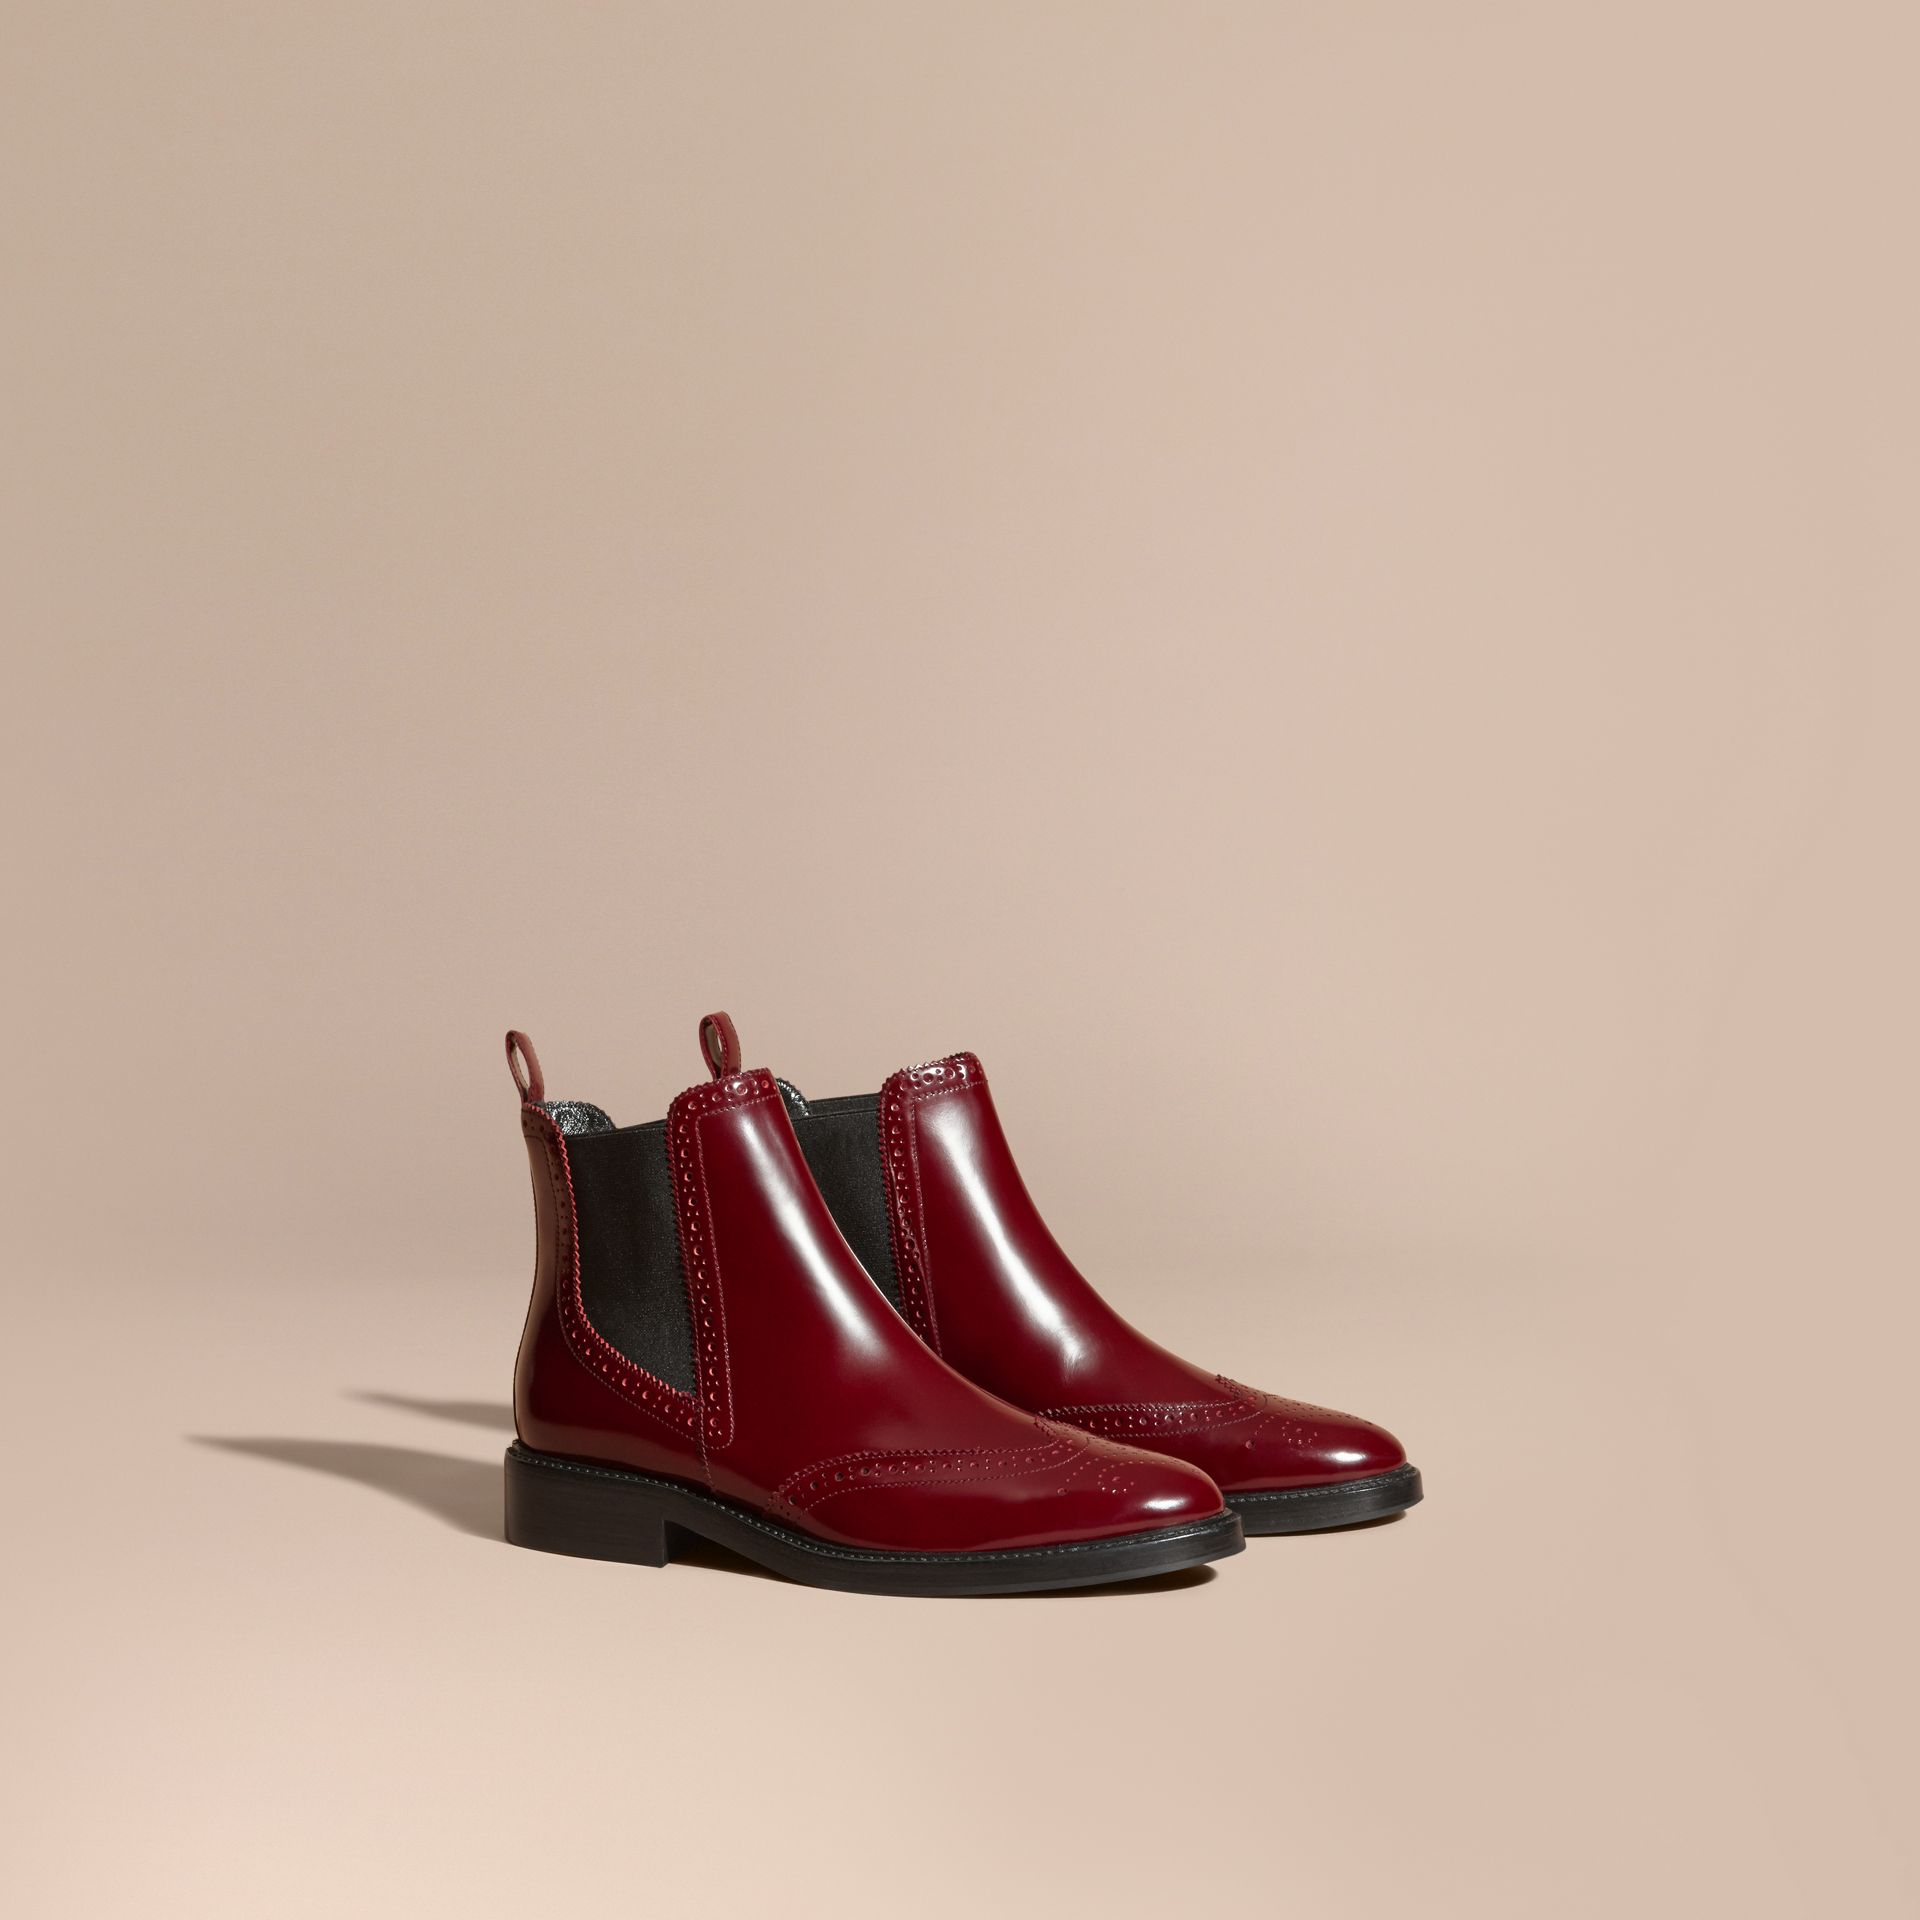 Rouge acajou Bottines Chelsea en cuir avec bout golf Rouge Acajou - photo de la galerie 1